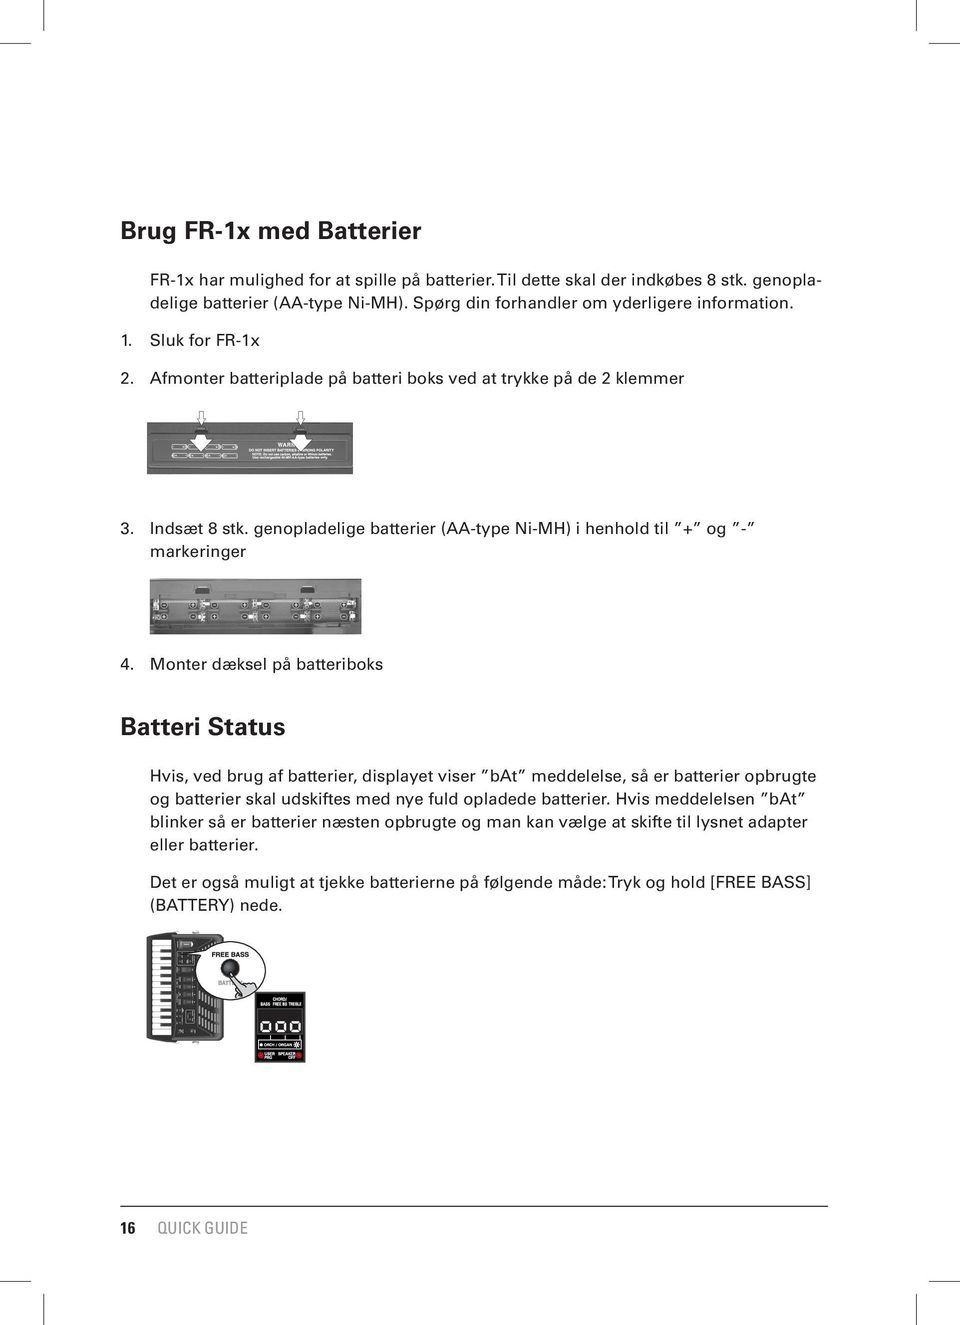 Before you start playing Brug FR-1x med Batterier Installing and removing batteries The Installing FR-1x has a compartment and removing into which batteries you can The FR-1x s display now shows the